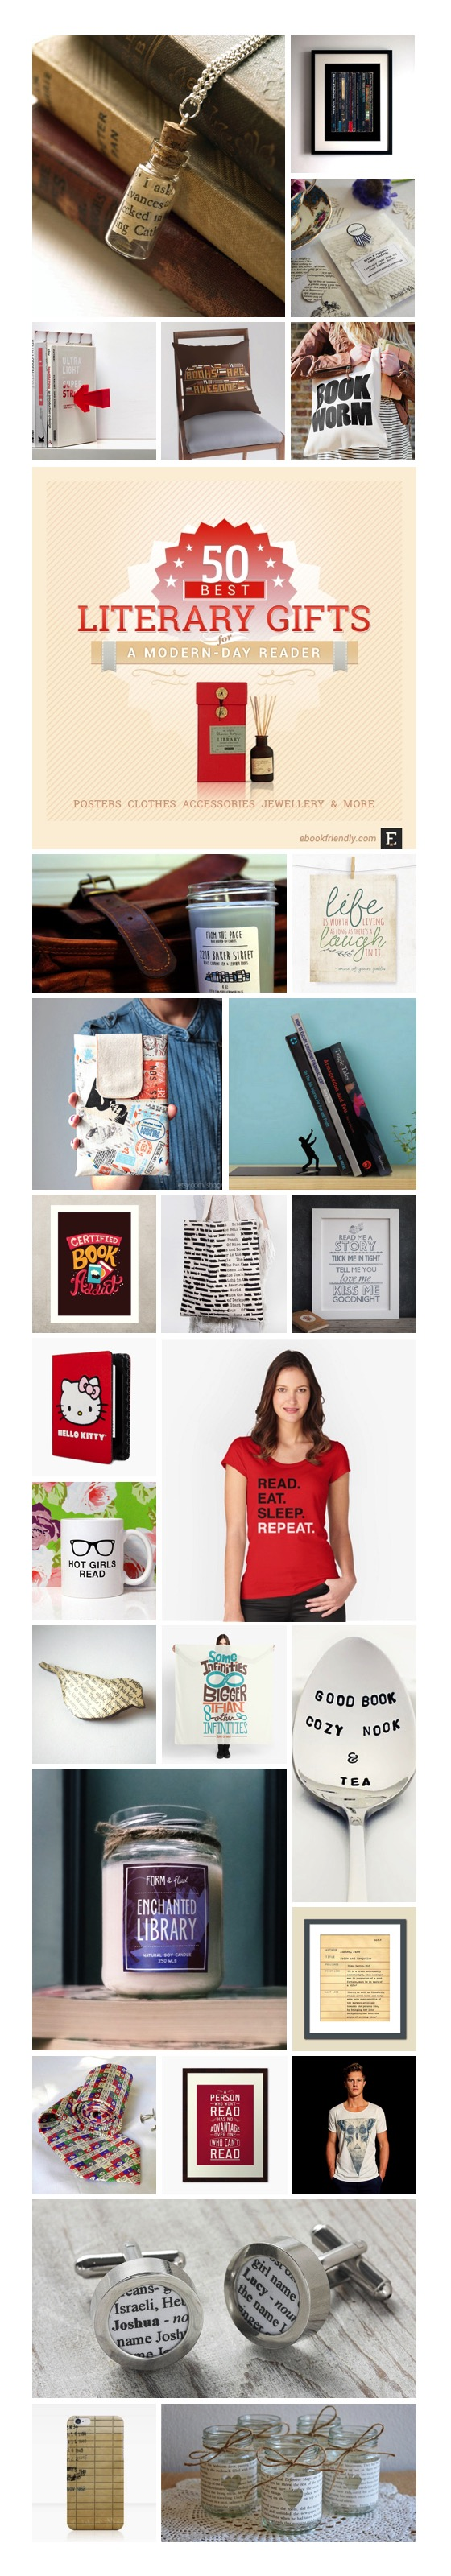 Best literary gifts for a modern-day book lover #infographic